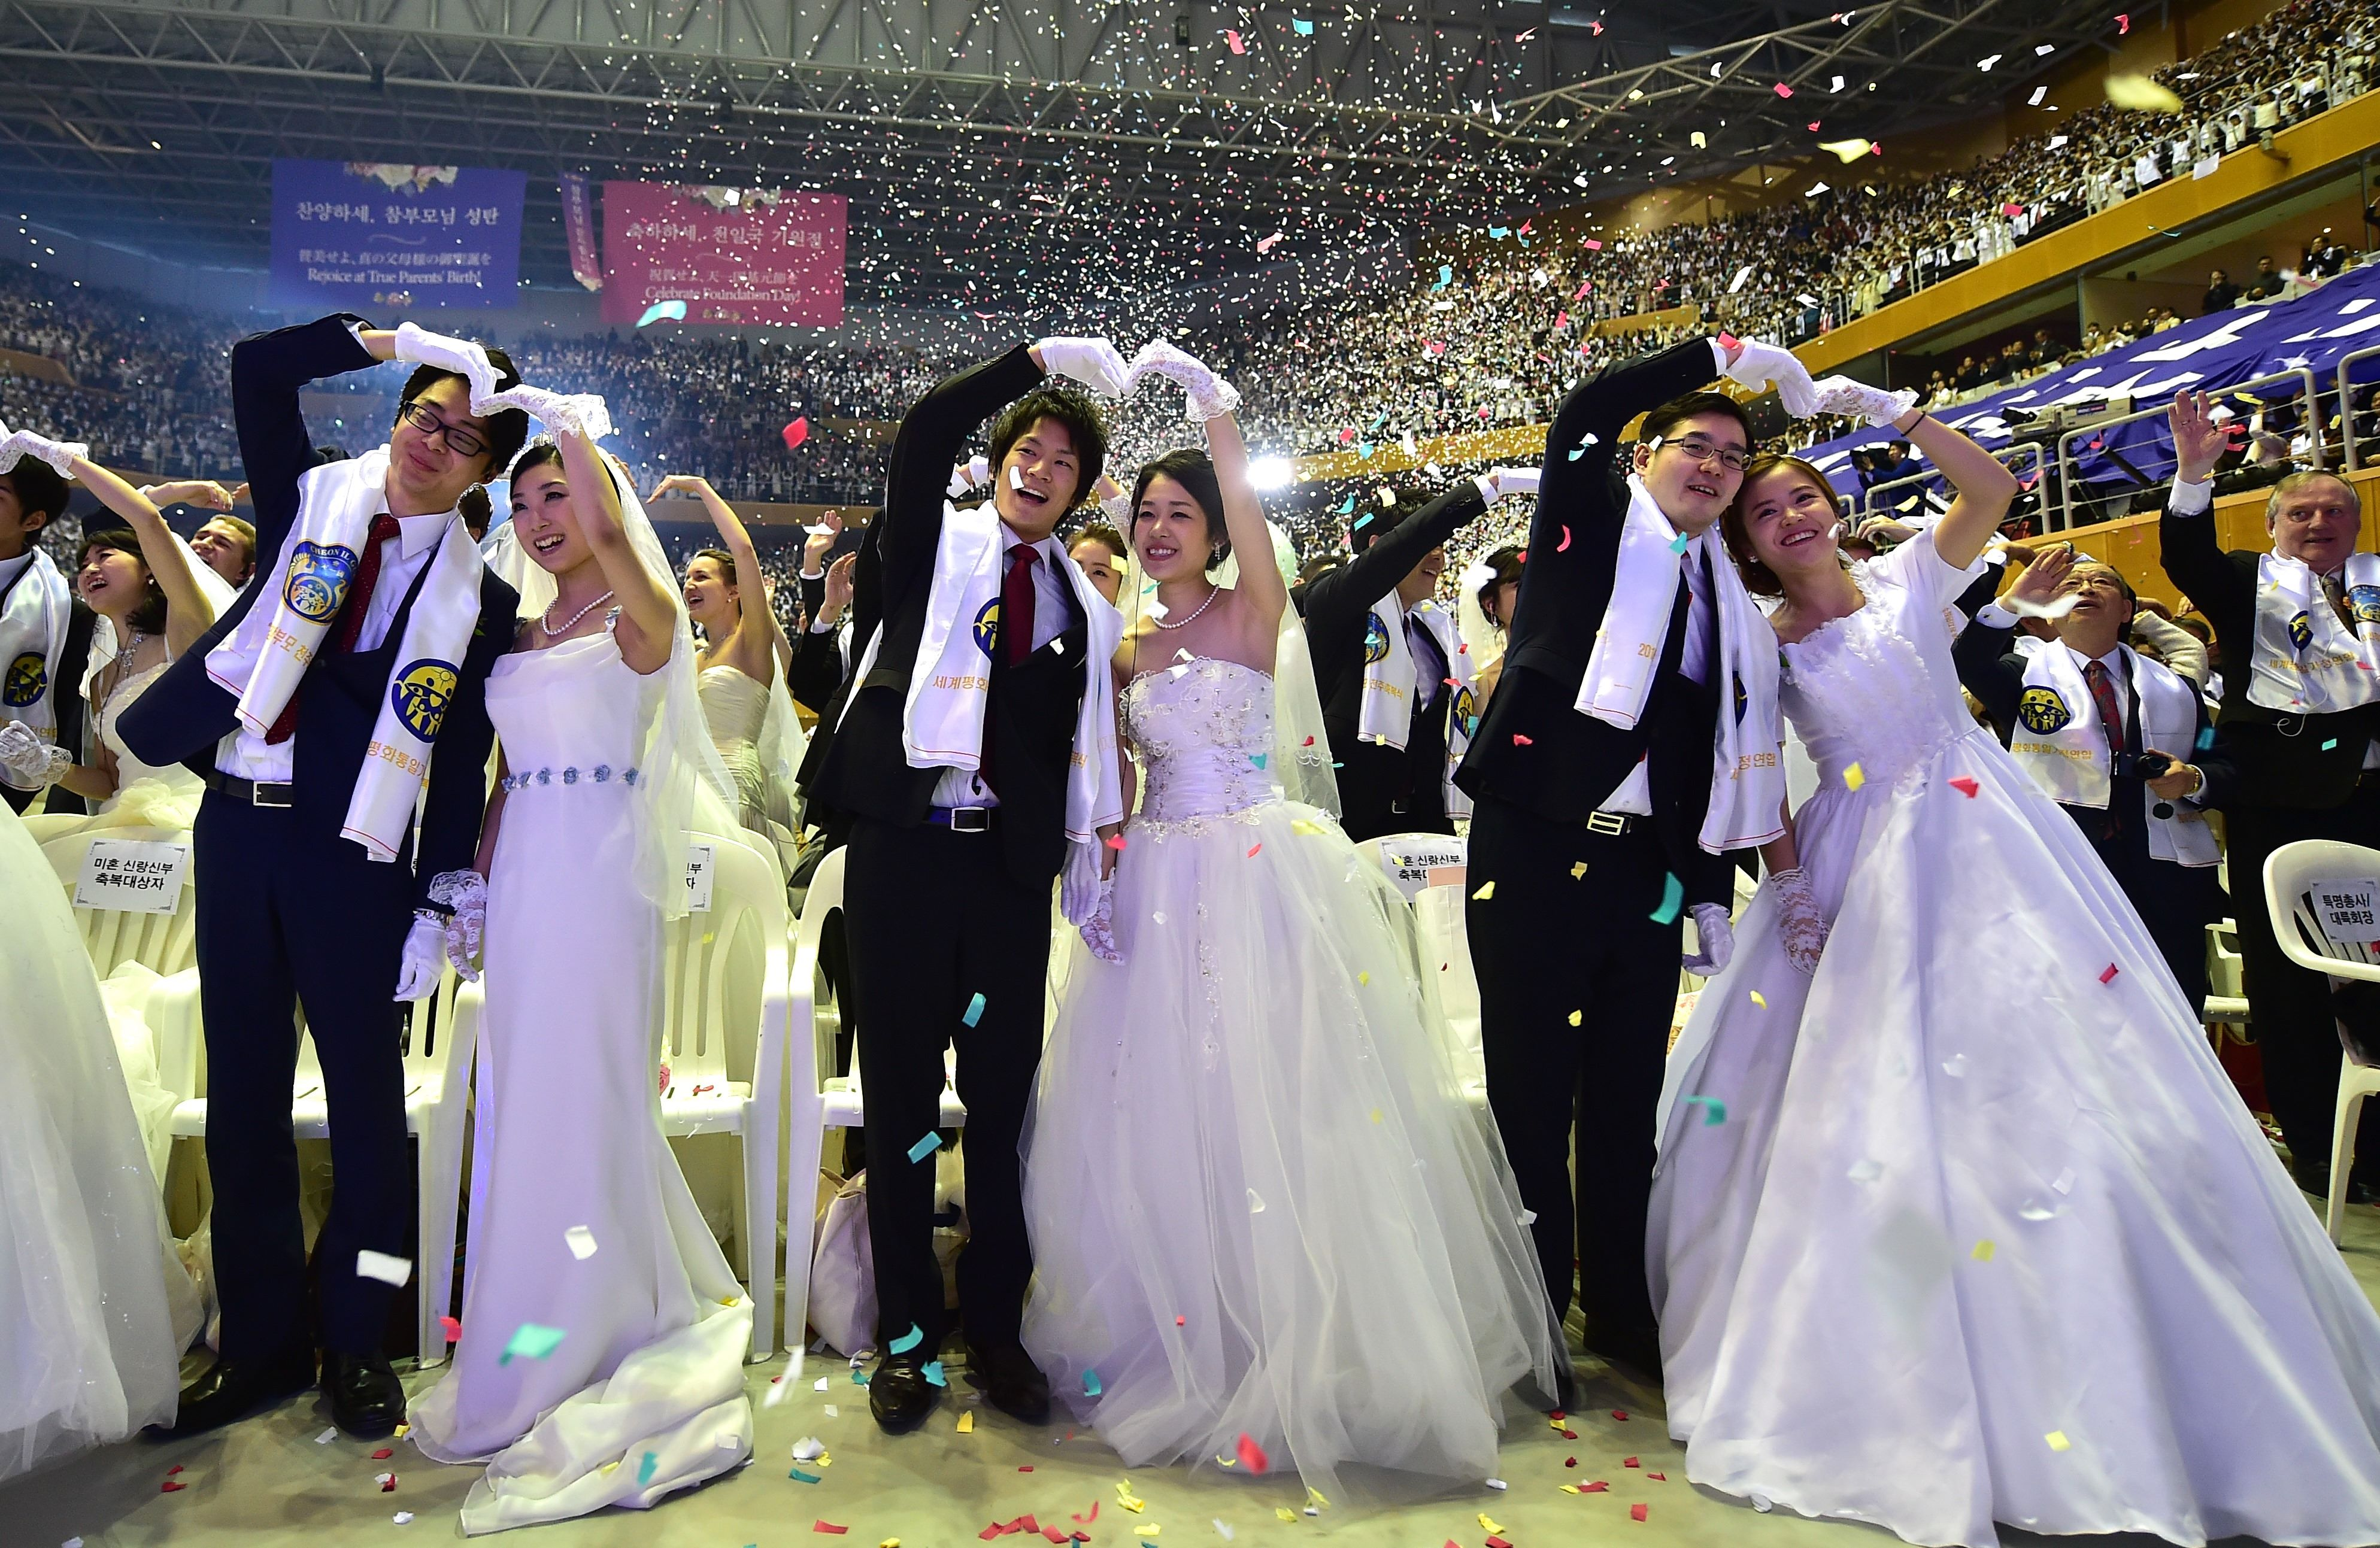 """Couples celebrate during a mass wedding held by the Unification Church at Cheongshim Peace World Center in Gapyeong, east of Seoul, on February 20, 2016. Hundreds of couples were married at the South Korean headquarters of the Unification Church. The Unification Church, set up by Sun Myung Moon in Seoul in 1954, is one of the world's most controversial religious organisations, and its devotees are often dubbed """"Moonies"""" after the founder. AFP PHOTO / JUNG YEON-JE SKOREA--RELIGION-UNIFICATION-MARRIAGE"""